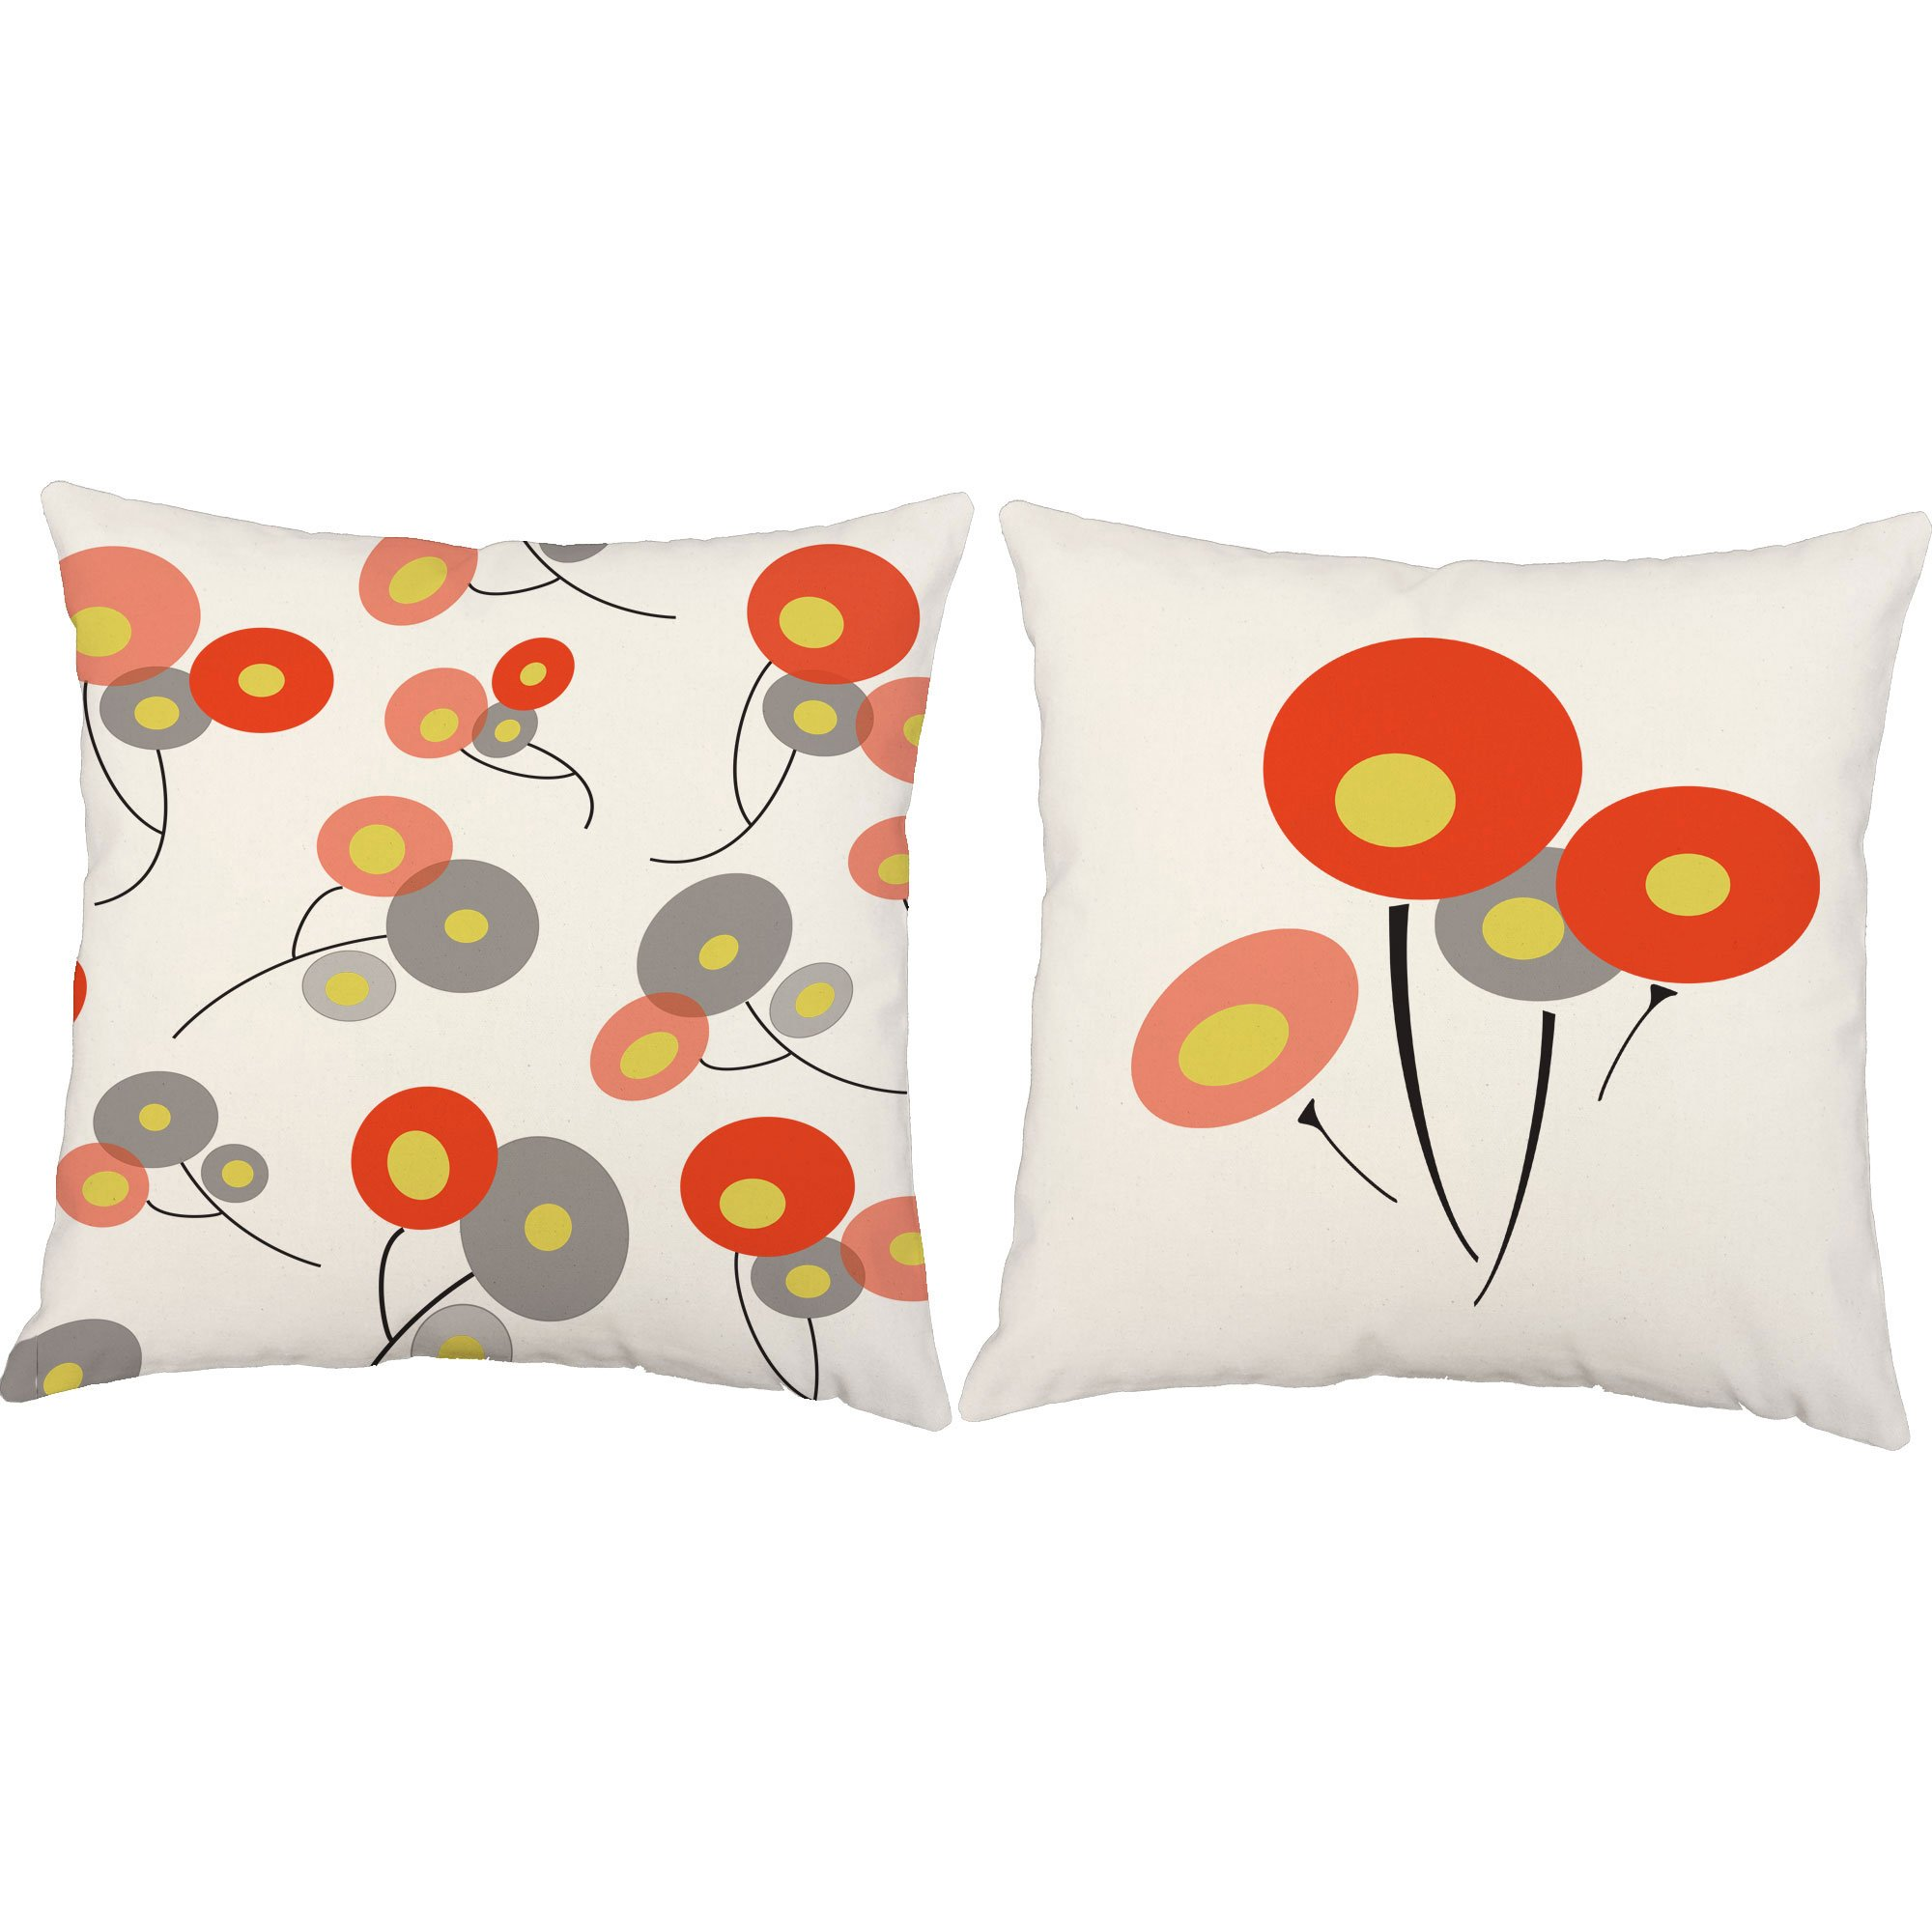 Set of 2 RoomCraft Retro Red Poppies Throw Pillows 20x20 Square White Indoor-Outdoor Geometric Floral Cushions